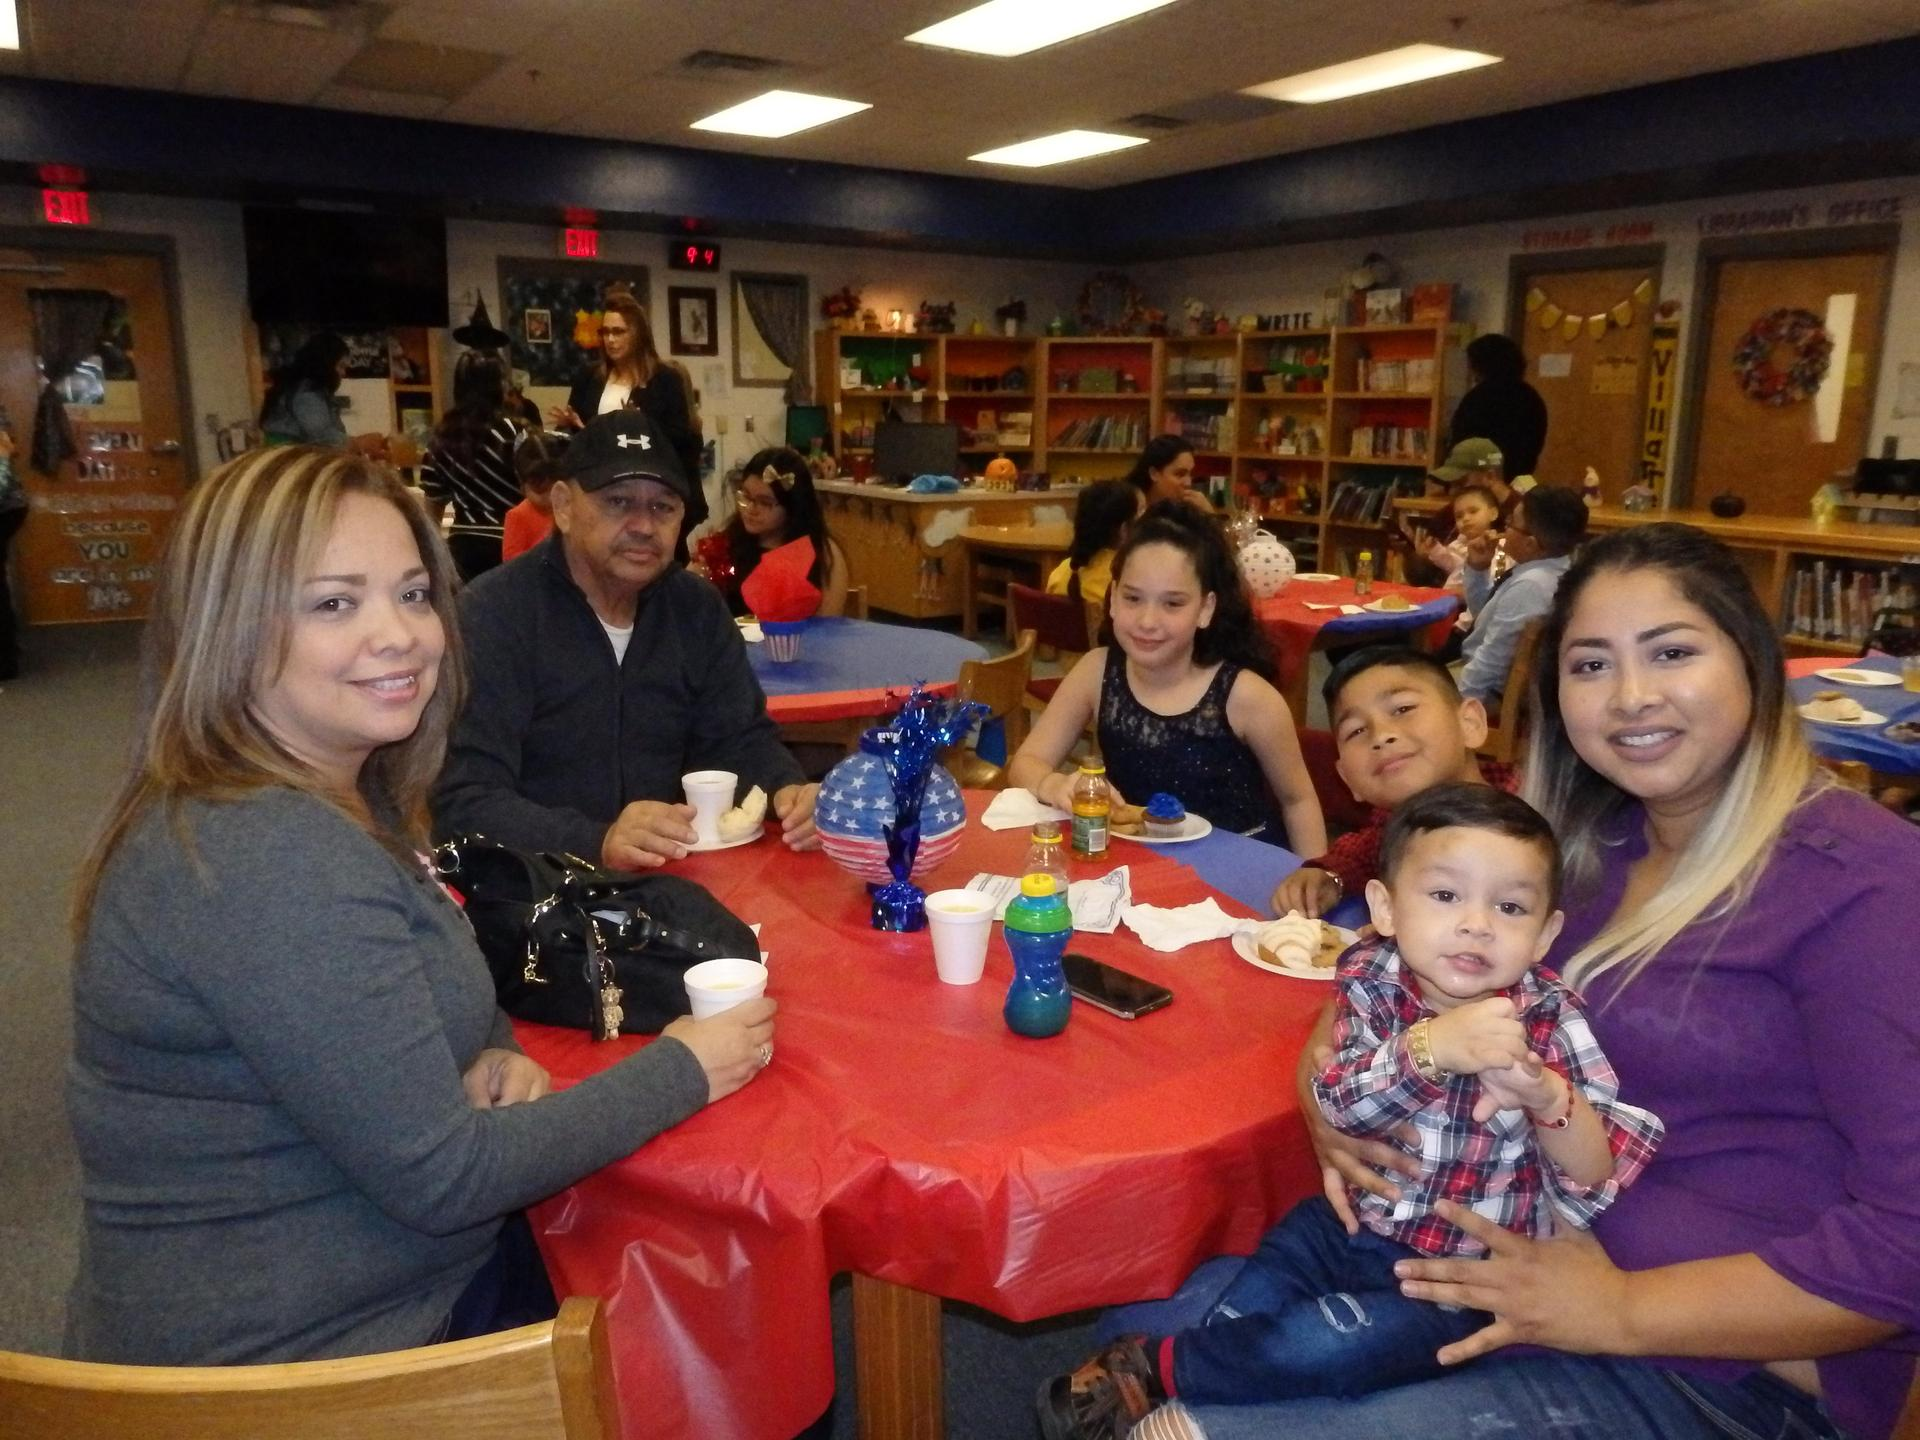 Student council parents and children celebrate in the library